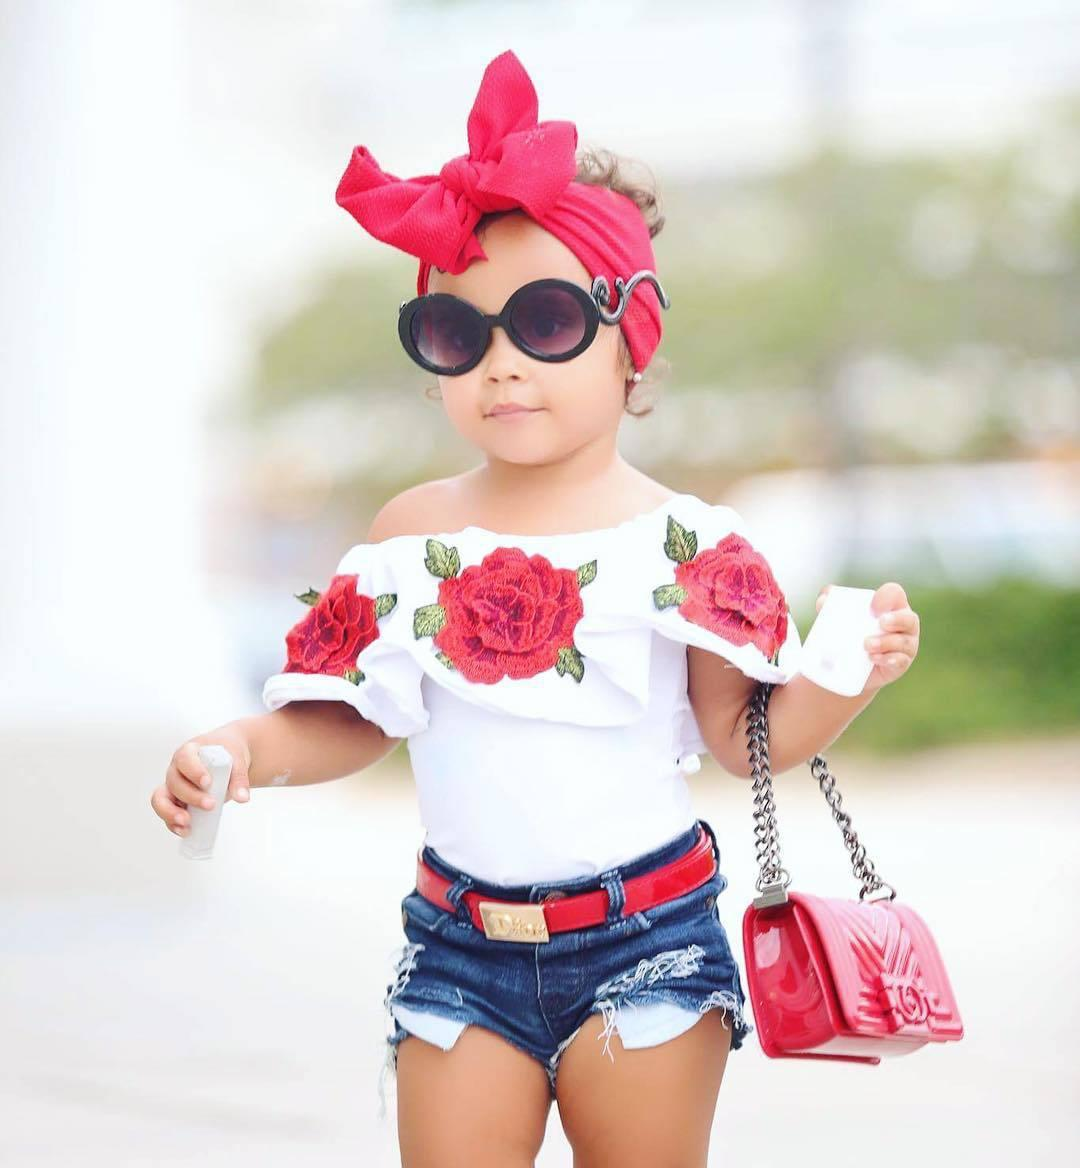 12f1ba6cd386 2019 New Baby Girls Summer T Shirt White Flower Print Top Clothing Girls  Kids Wave Sleeve Cute Floral Soft Comfort Clothes 80 120cm KBT01 From  Convoy, ...